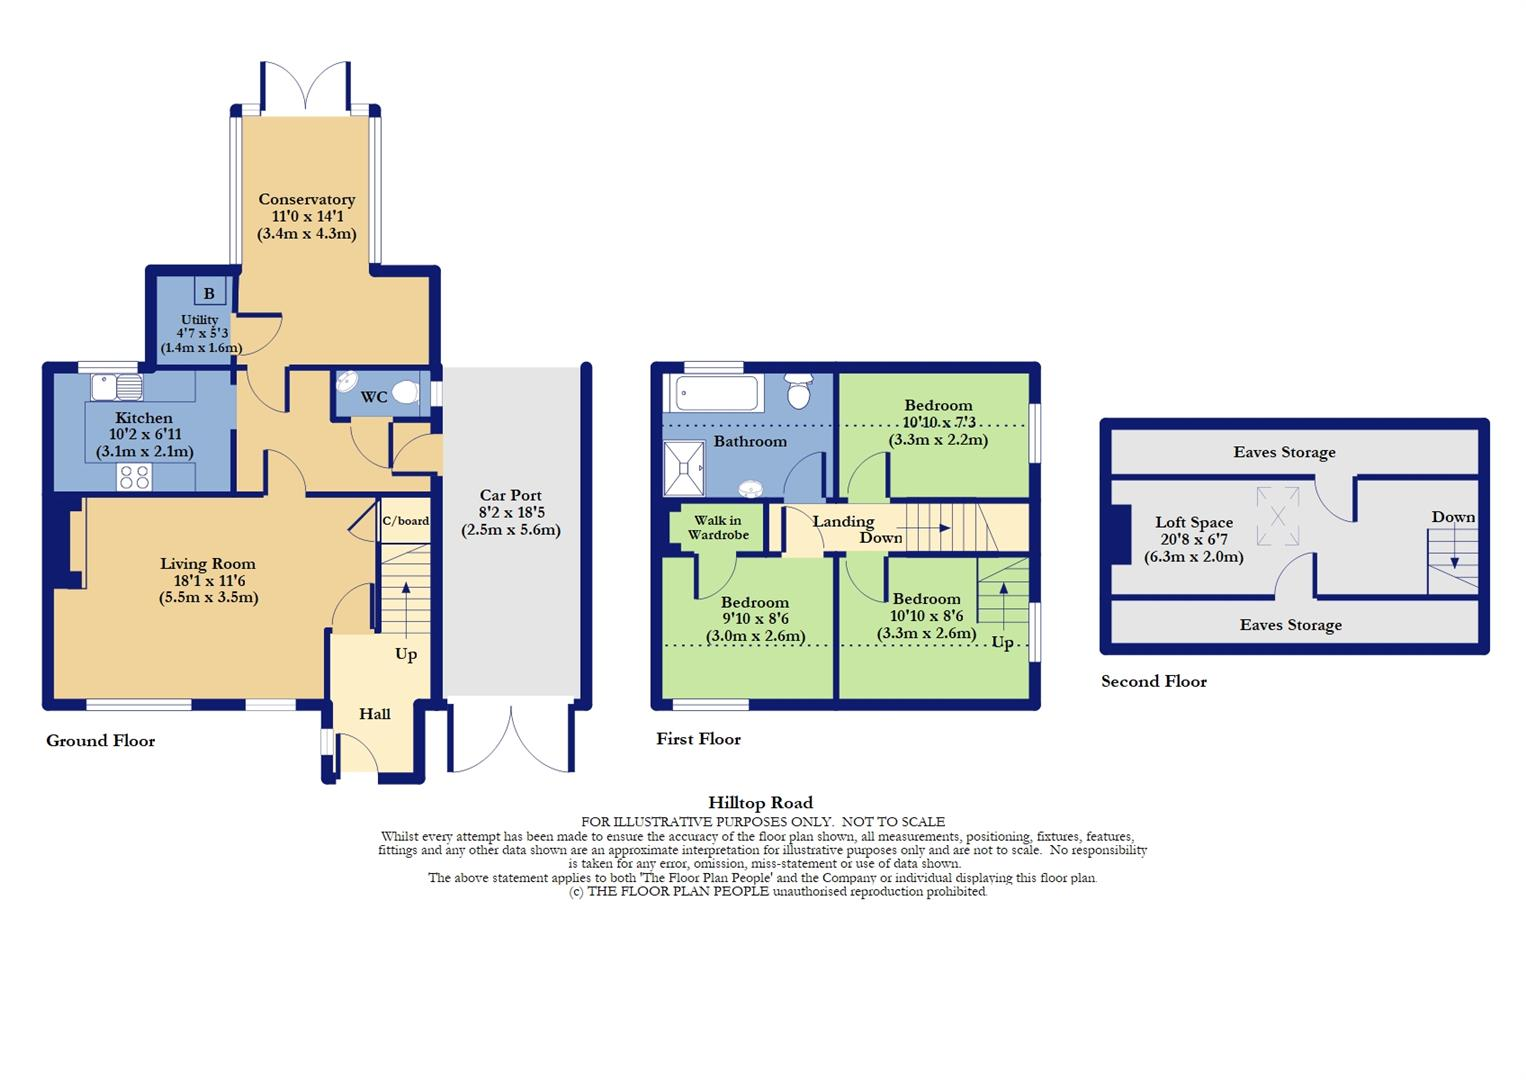 Floorplans For Hilltop Road, Twyford